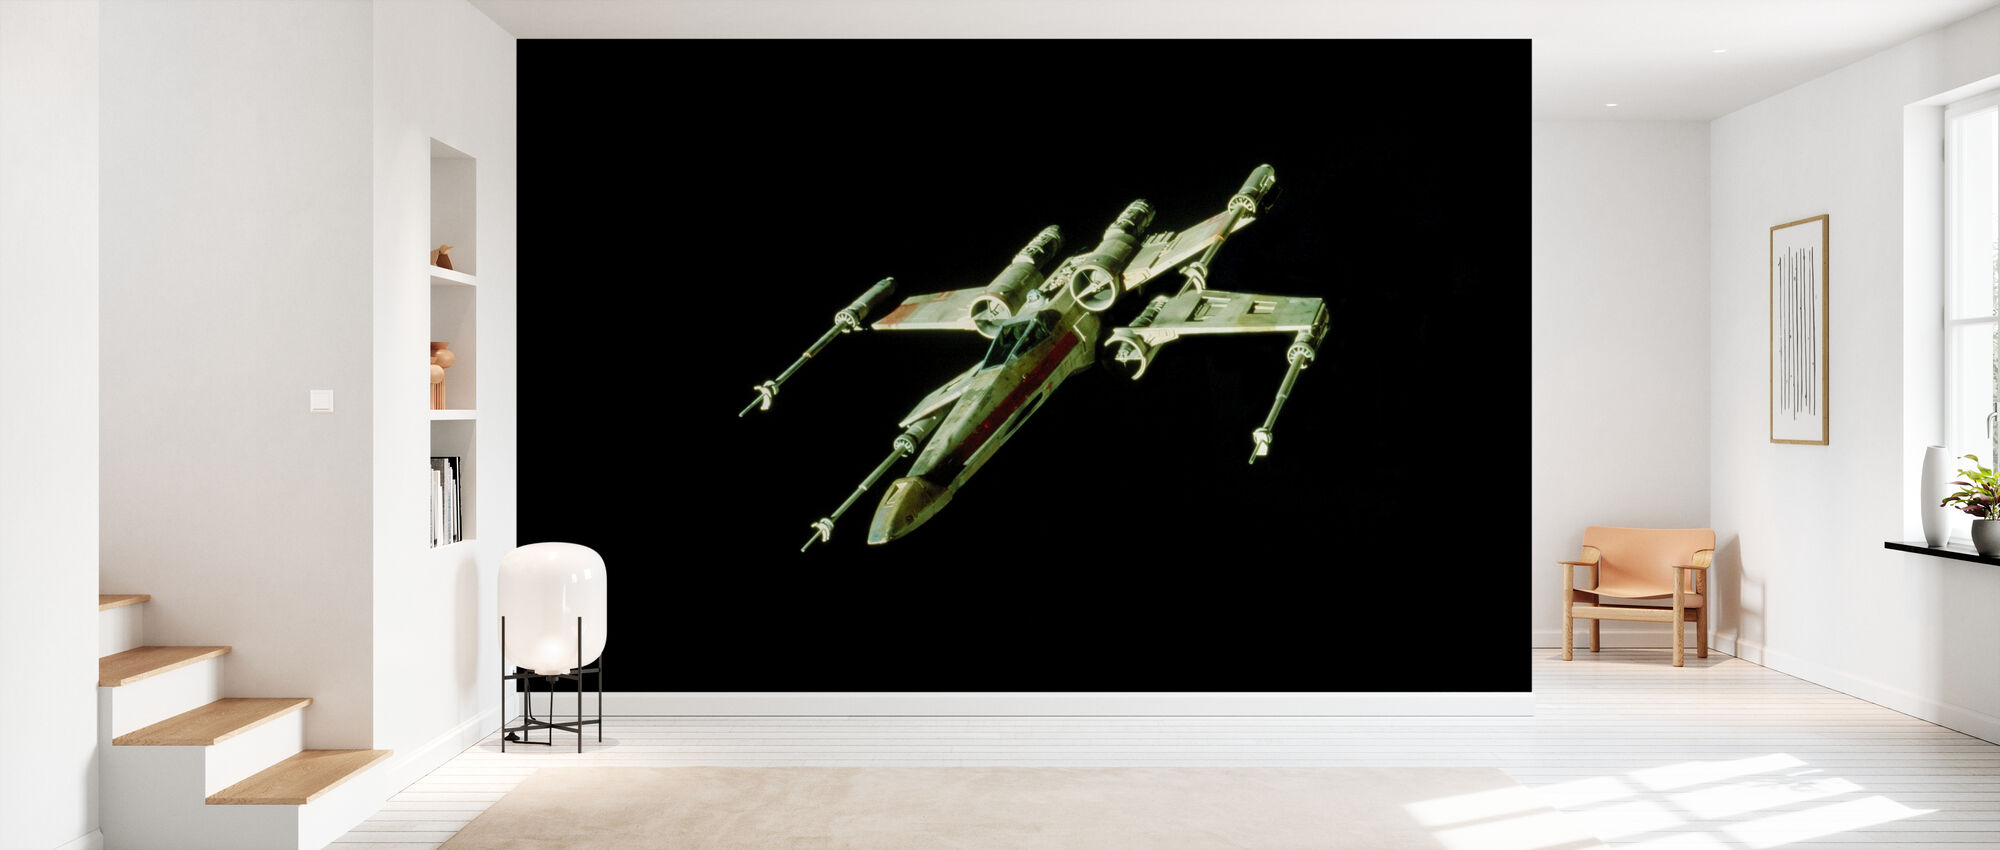 Star Wars - X-wing Starfighter - Tapet - Hall